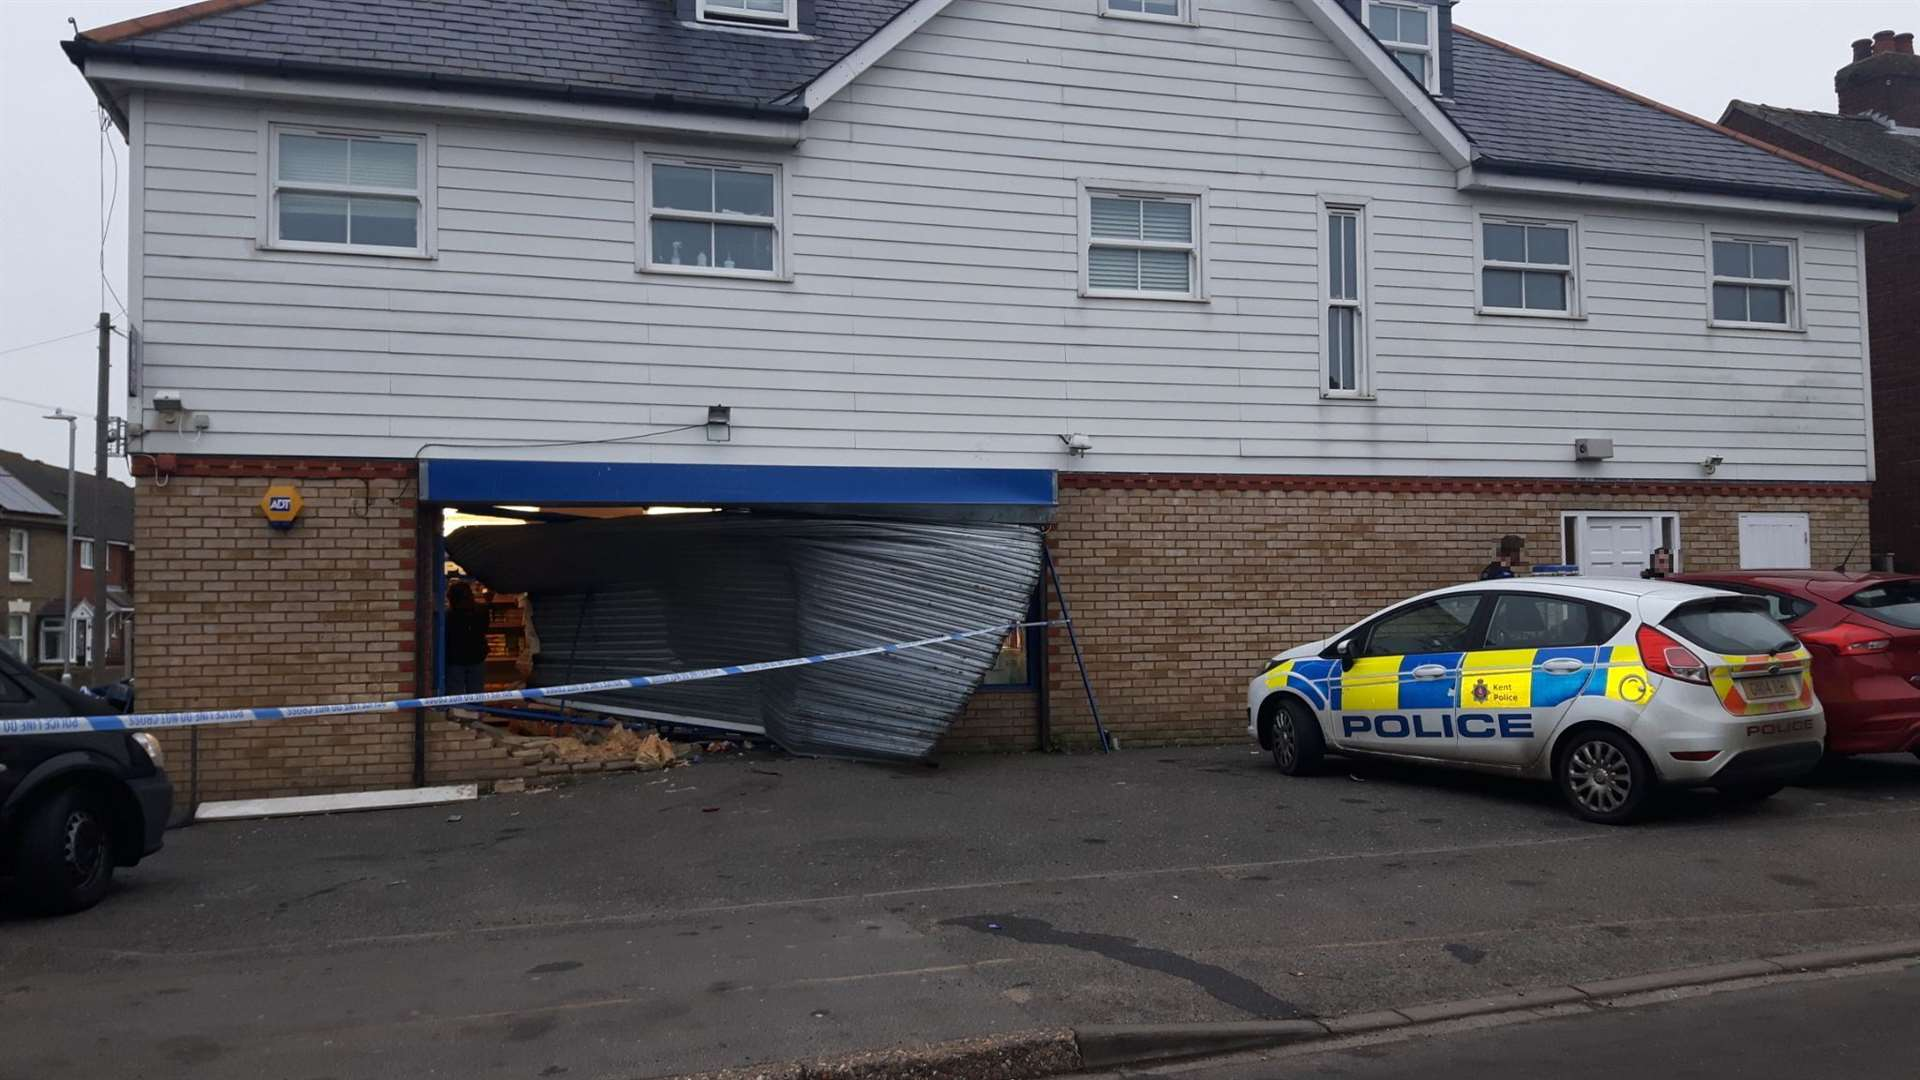 A vehicle smashed into the shop at Orchard Avenue, Deal